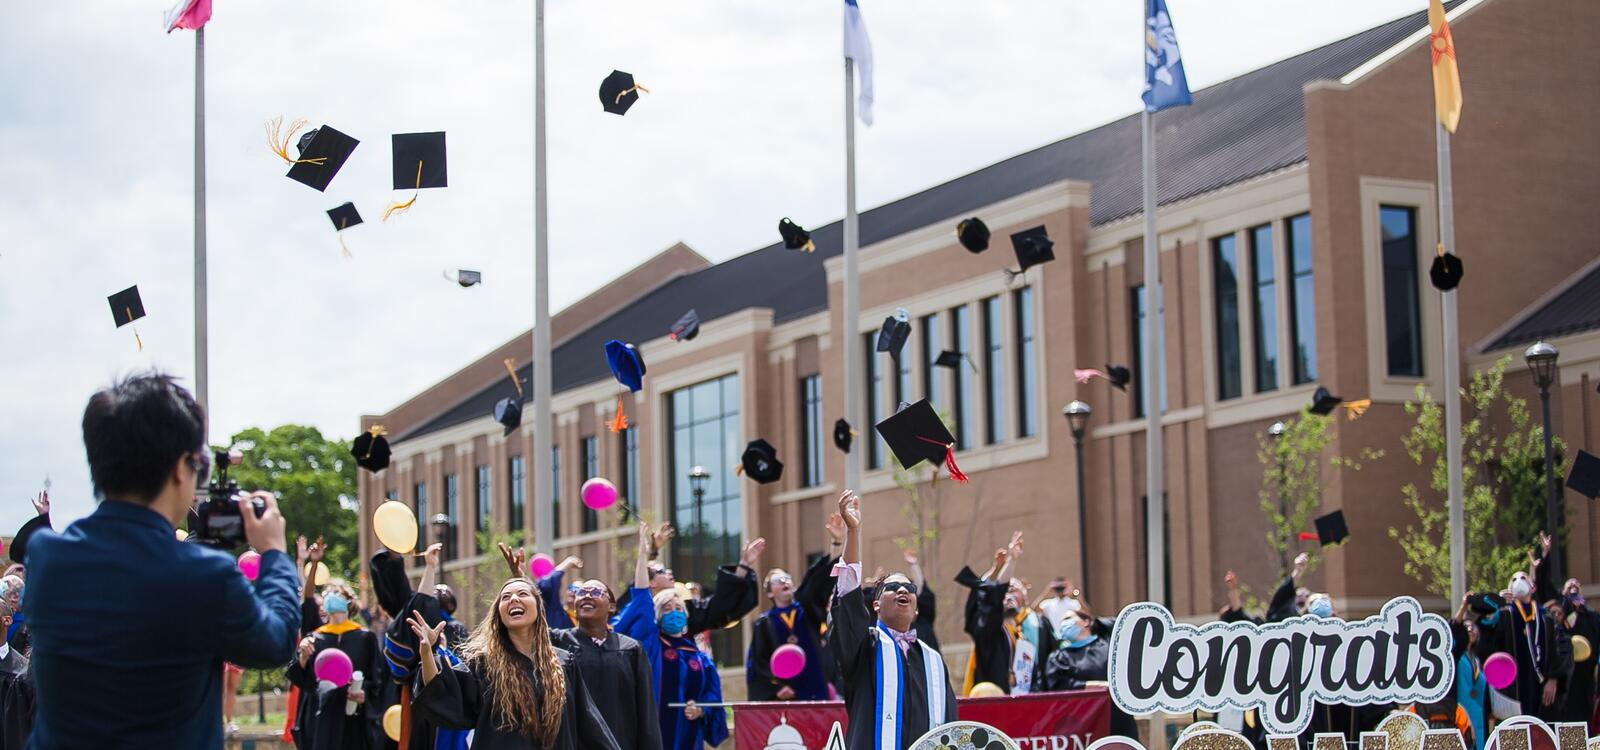 Graduating seniors throw their caps in the air while being surrounded by proud faculty and staff